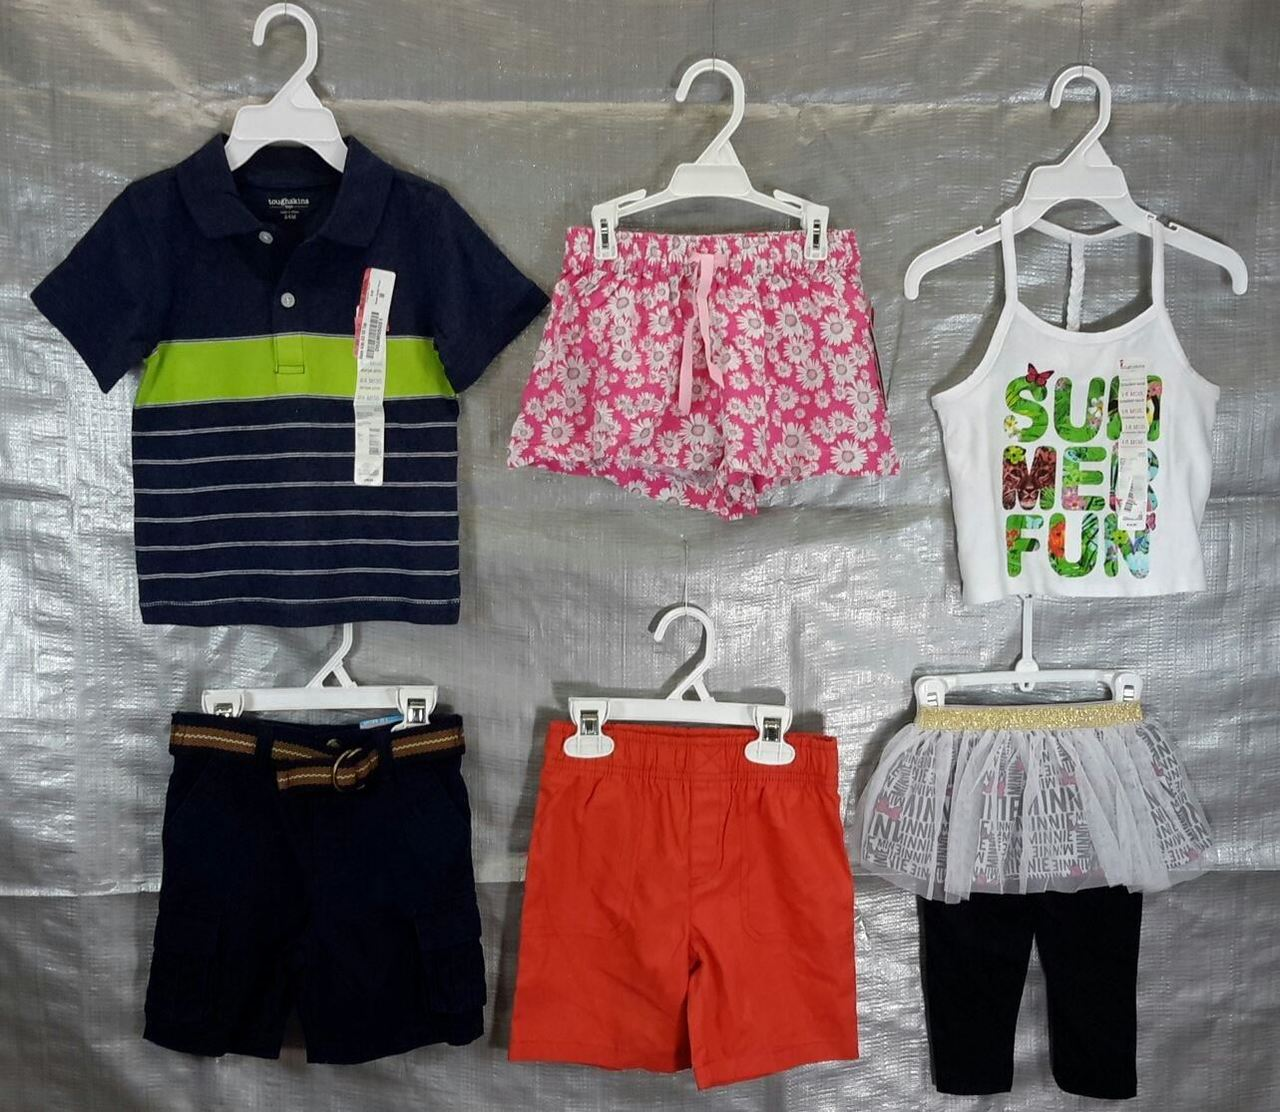 Wholesale Sample Lot Assorted Children's CLOTHING Name Brand Infants & Toddlers Brand New 50 PCS